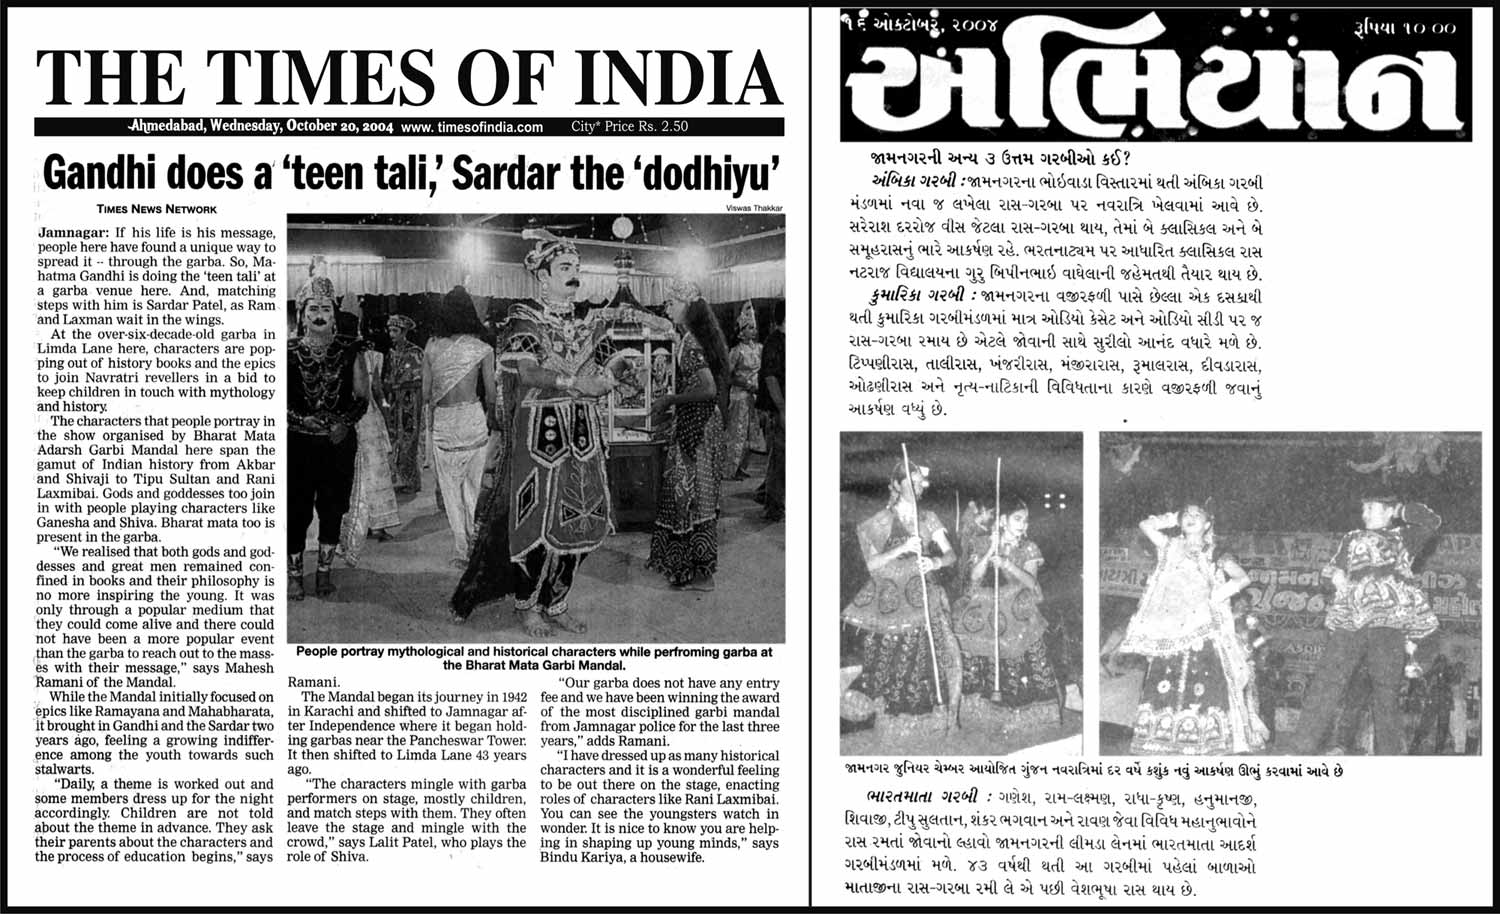 Bharatmata Adarsh Garbi Mandal in Times of India News